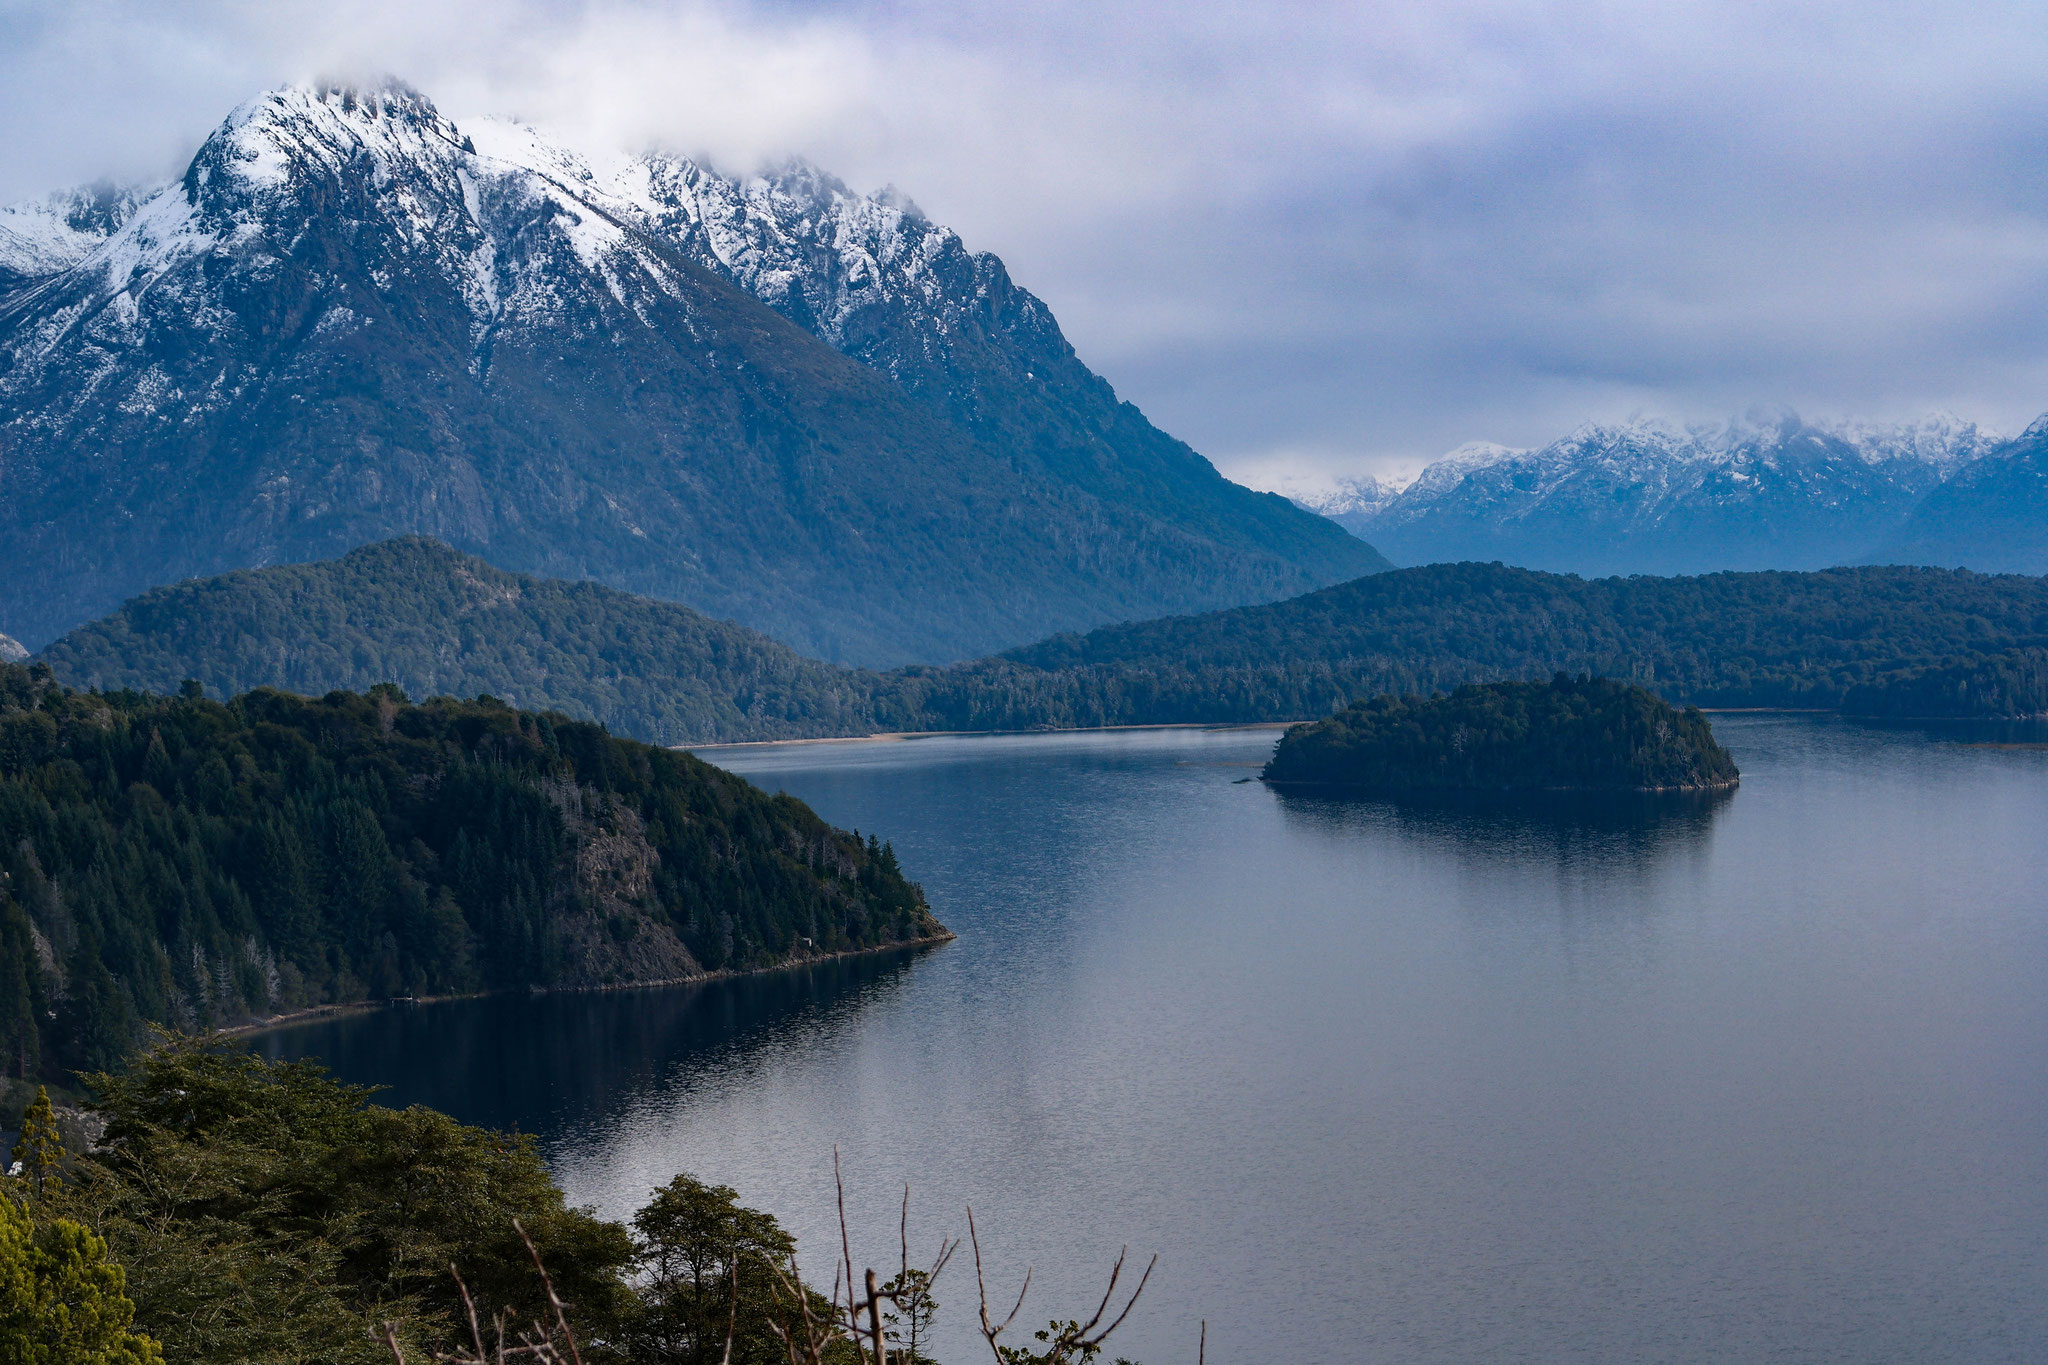 First photography trip after arriving in Bariloche, Argentina. View over the lakes and mountains.